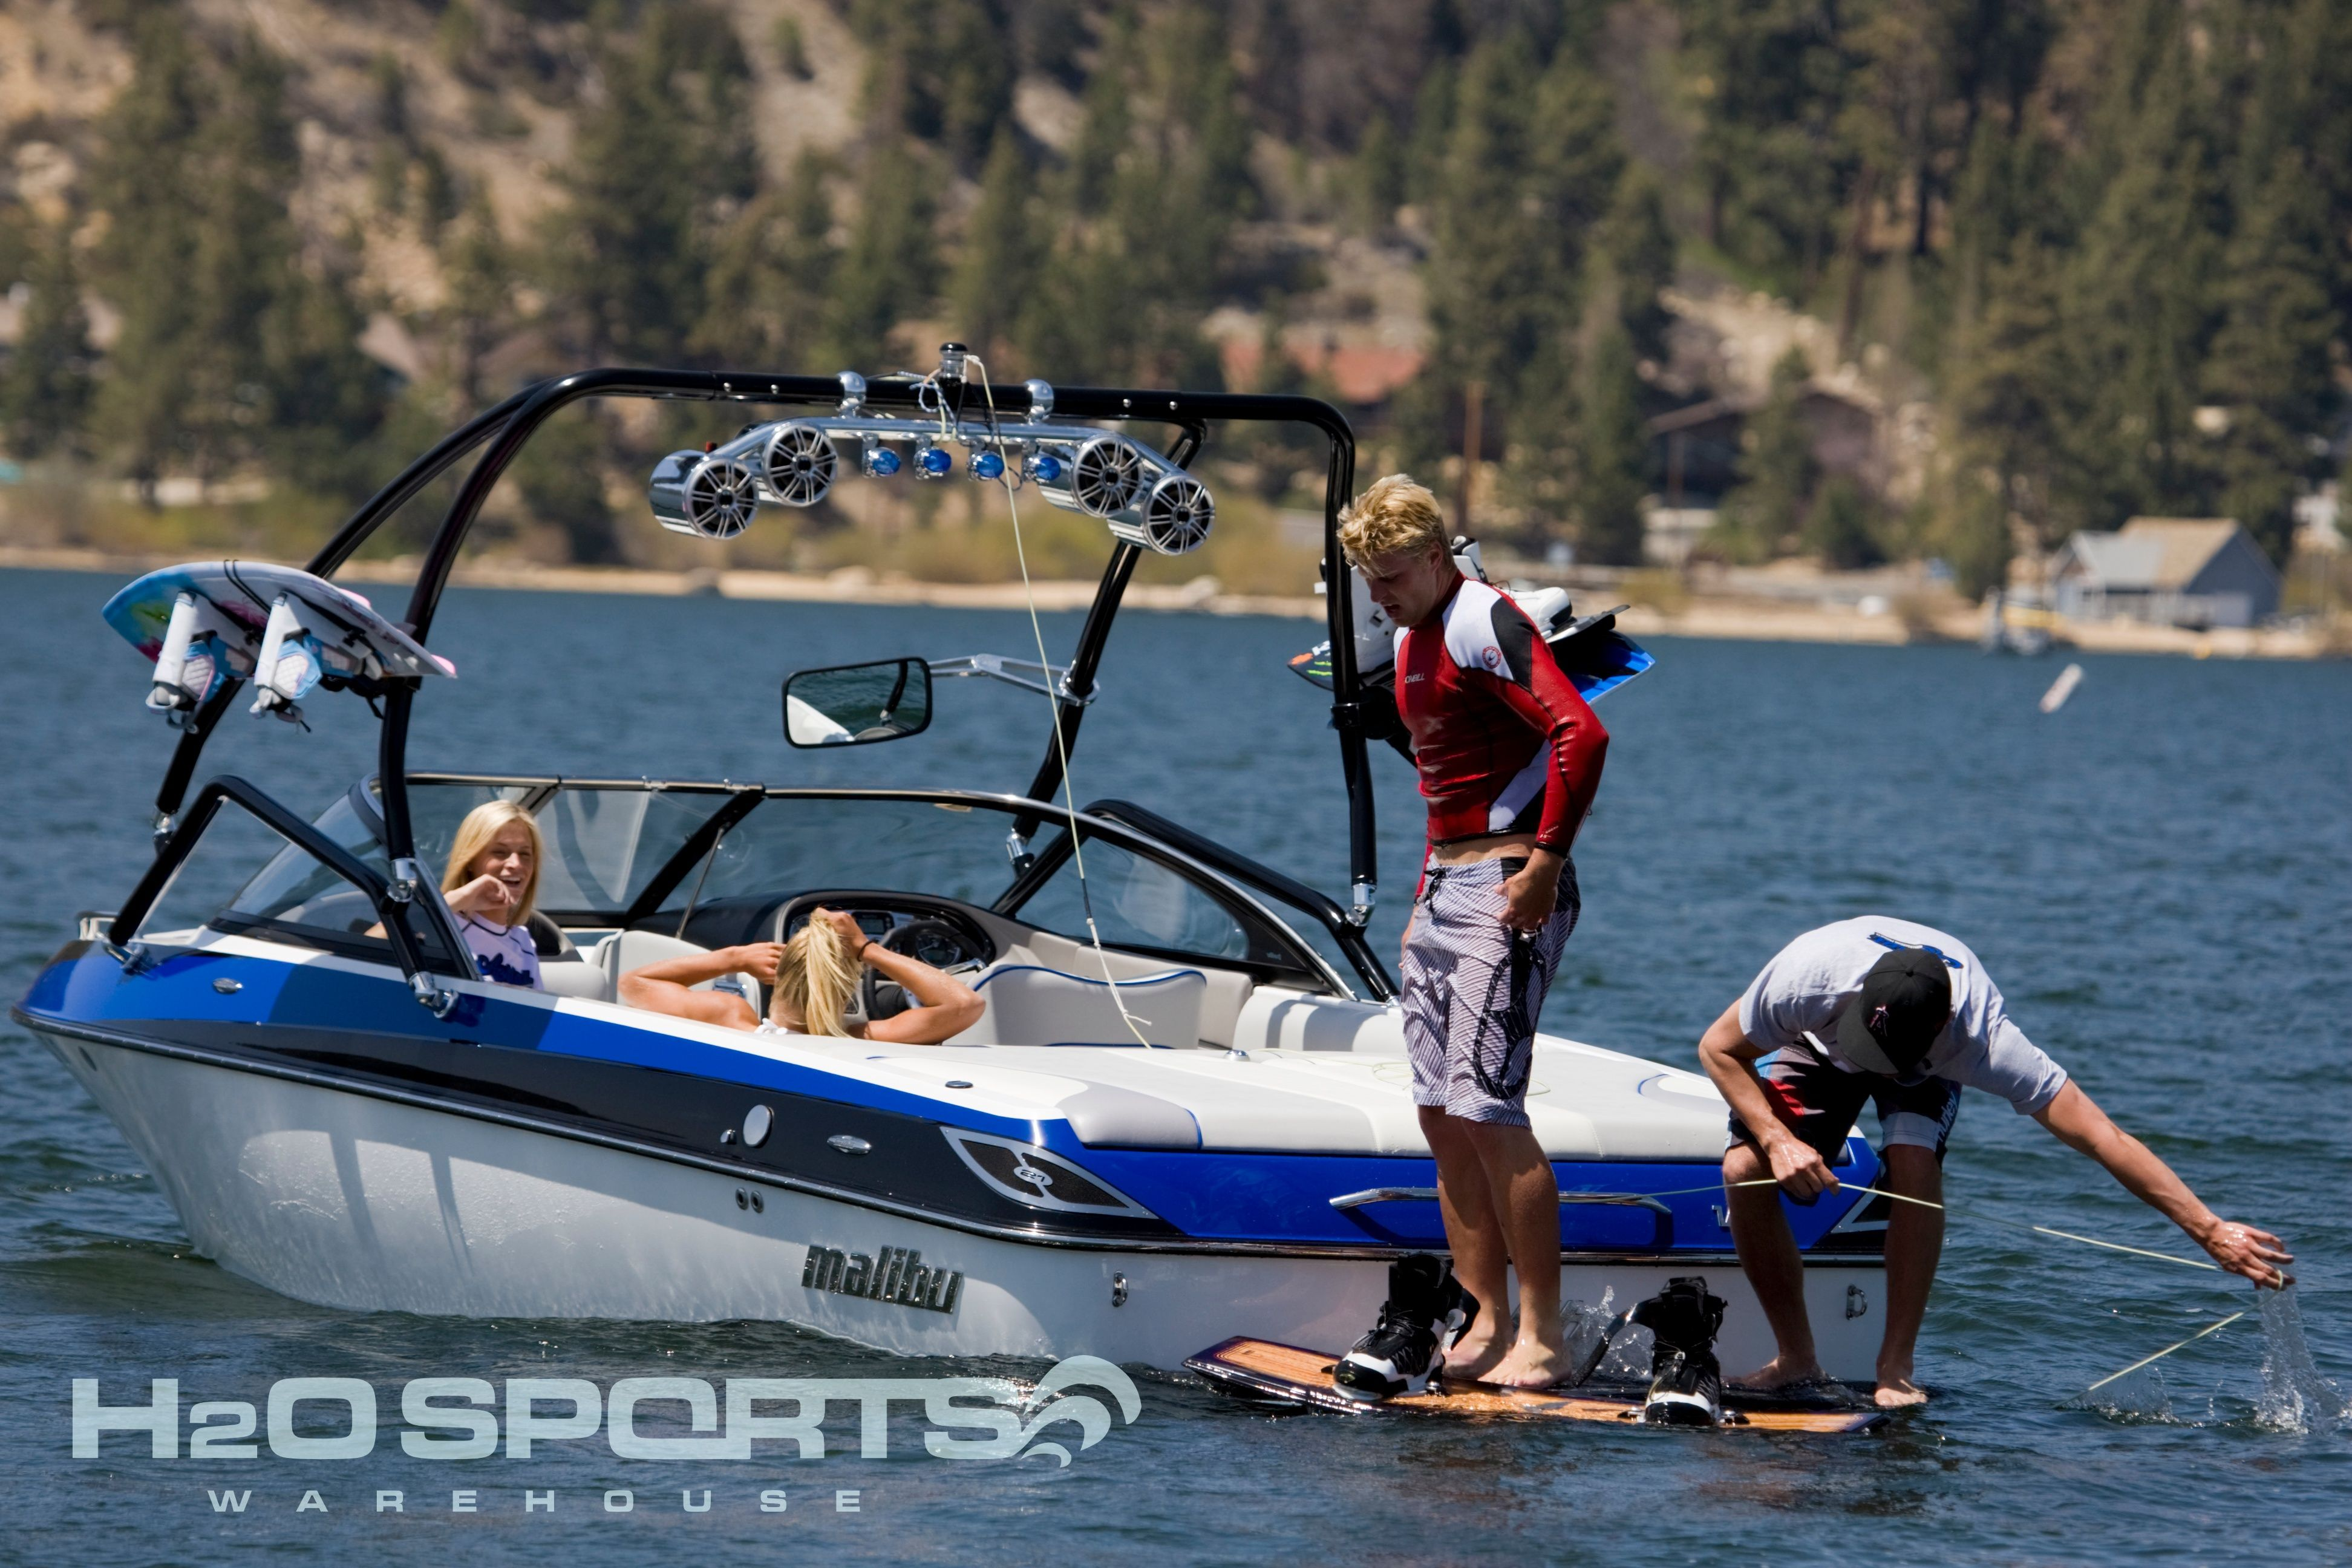 Out on the water wakeboarding with an airborne tower with speaker out on the water wakeboarding with an airborne tower with speaker light bar and wakeboard racks aloadofball Gallery